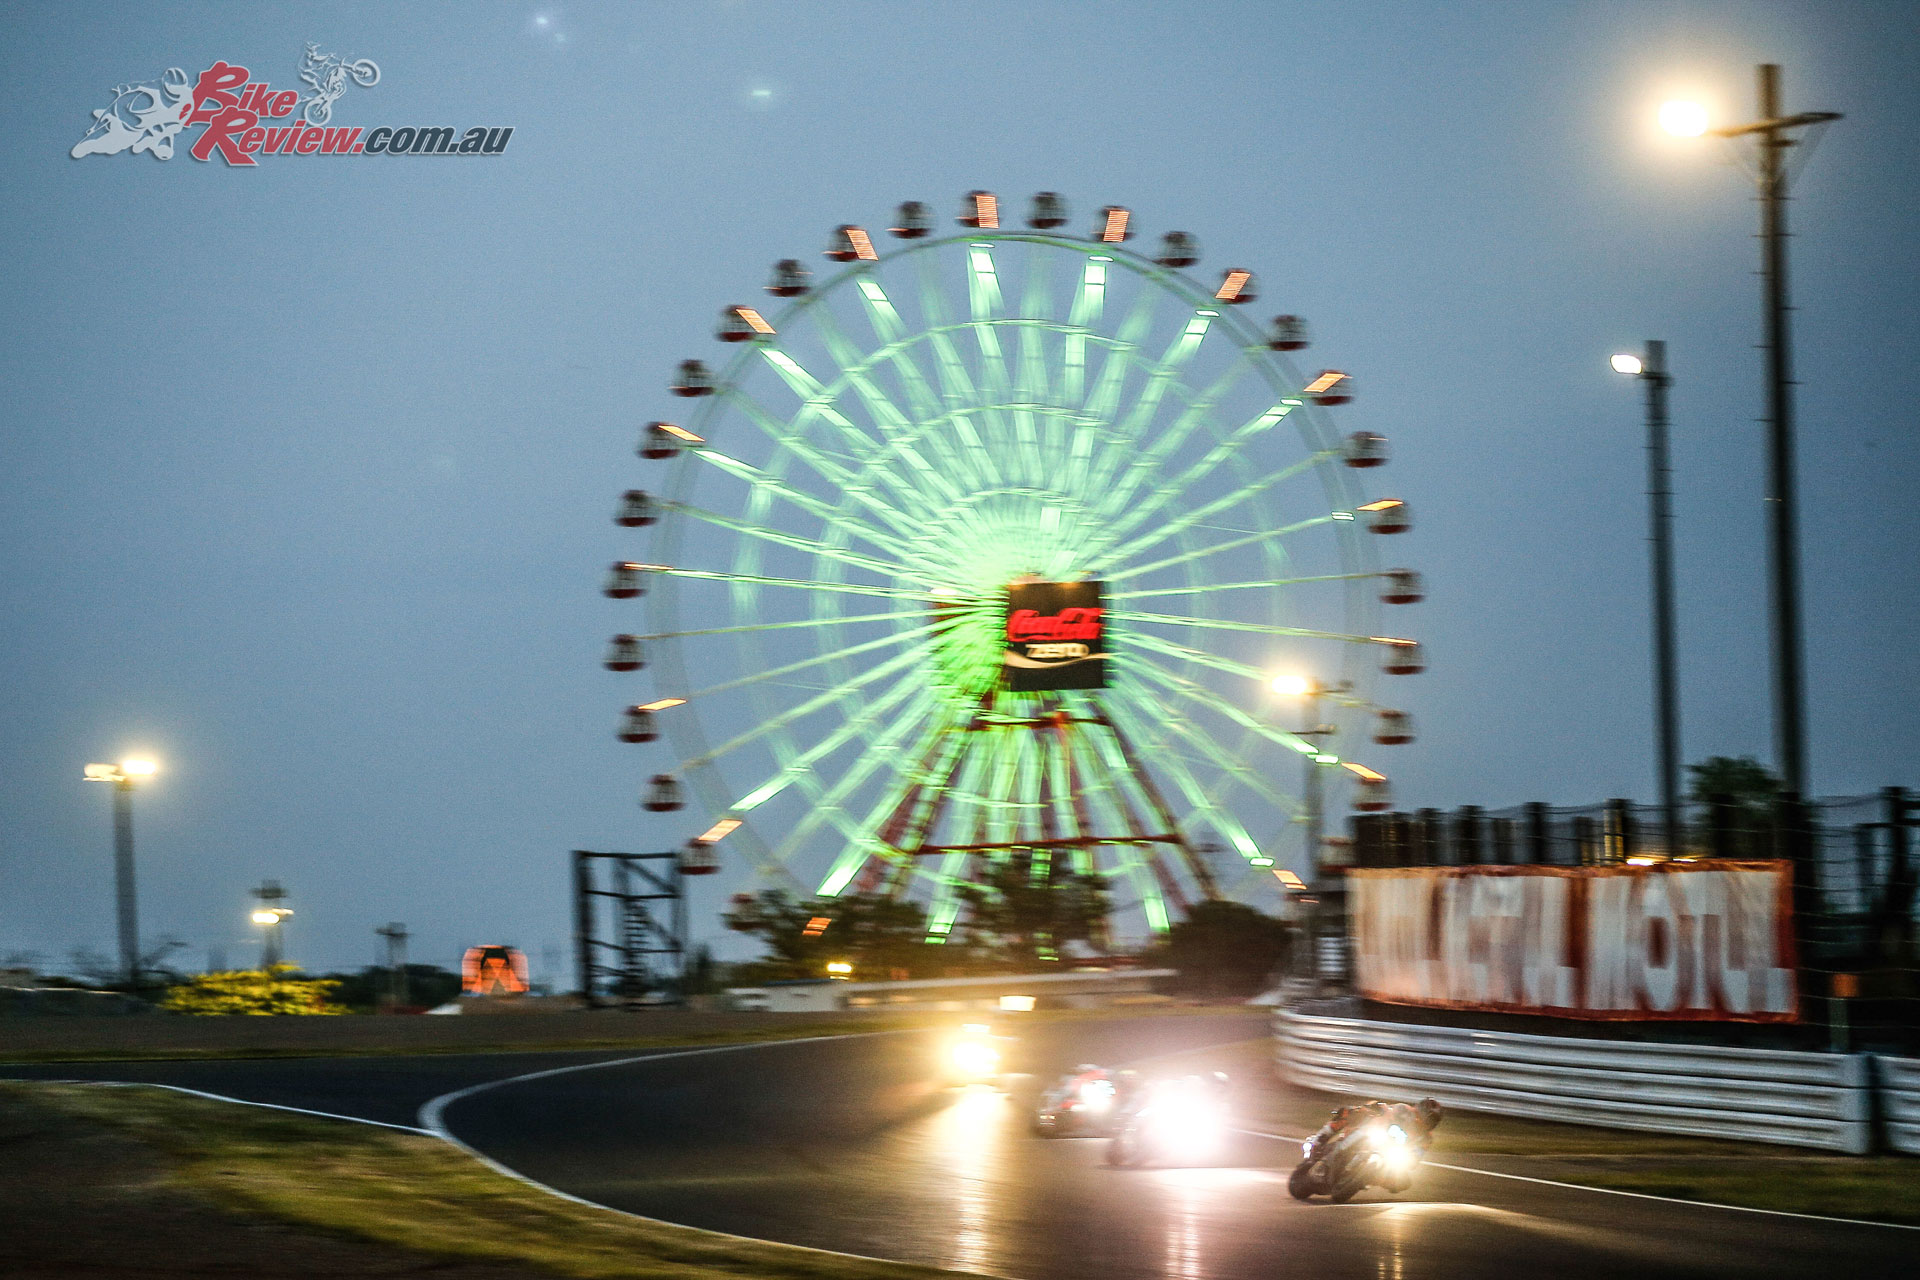 EWC returns to the Suzuka 8 Hours for the season finale